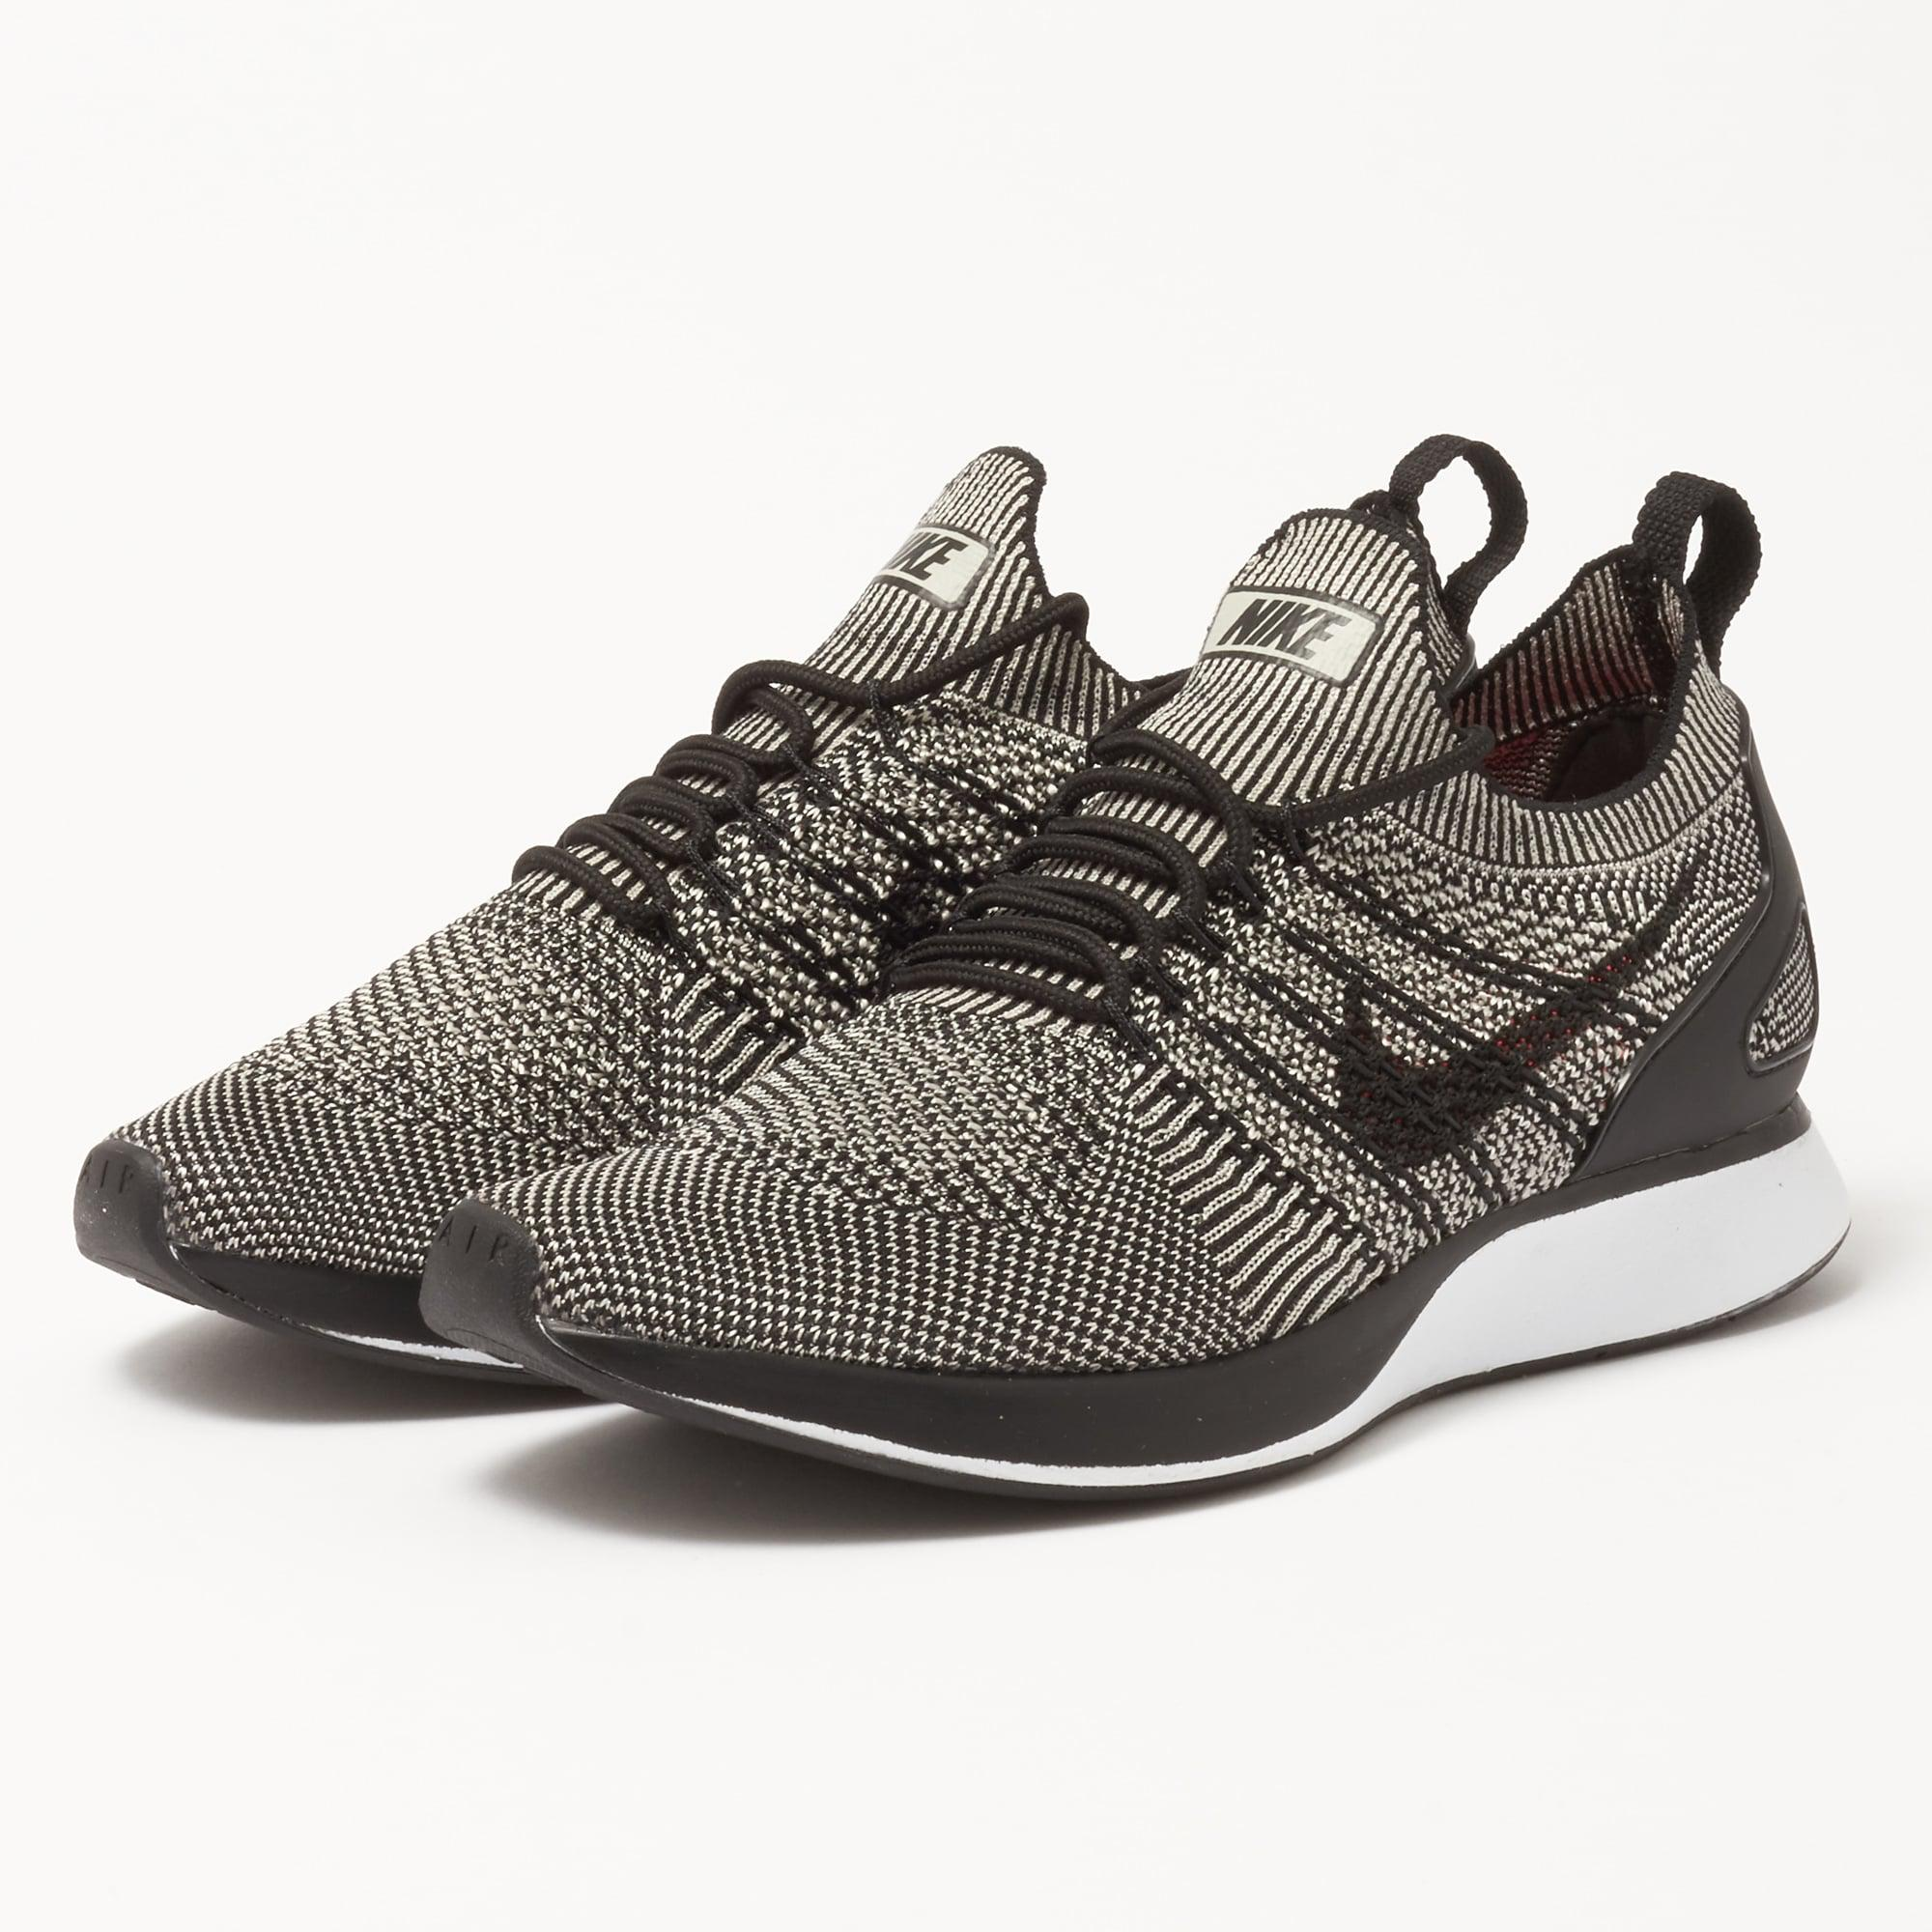 Lyst - Nike Air Zoom Mariah Flyknit Racer - Pale Grey in Black for Men 35e2f8a94